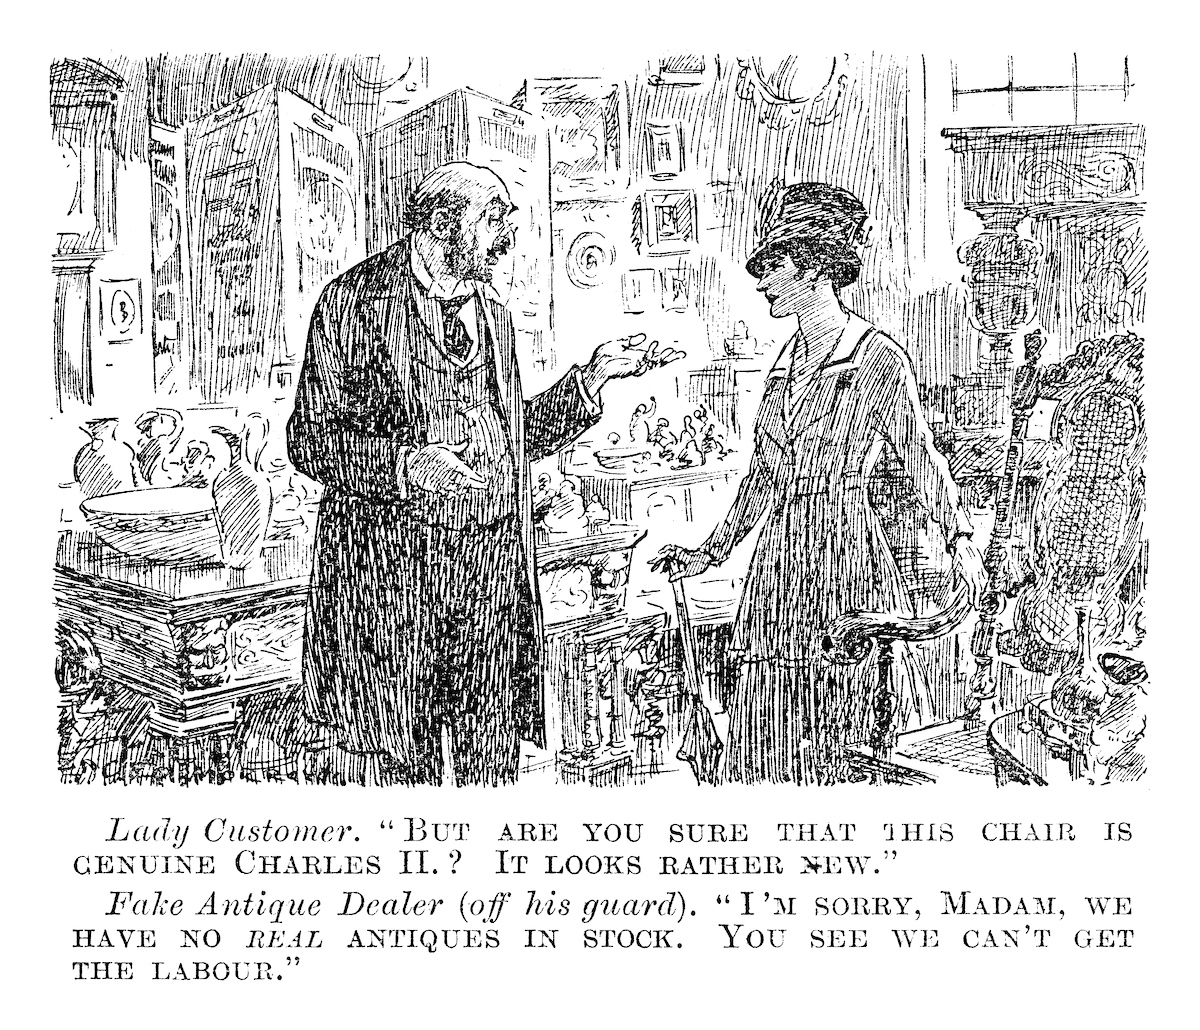 Antique Dealer. Punch magazine, May 1917. © Punch Limited